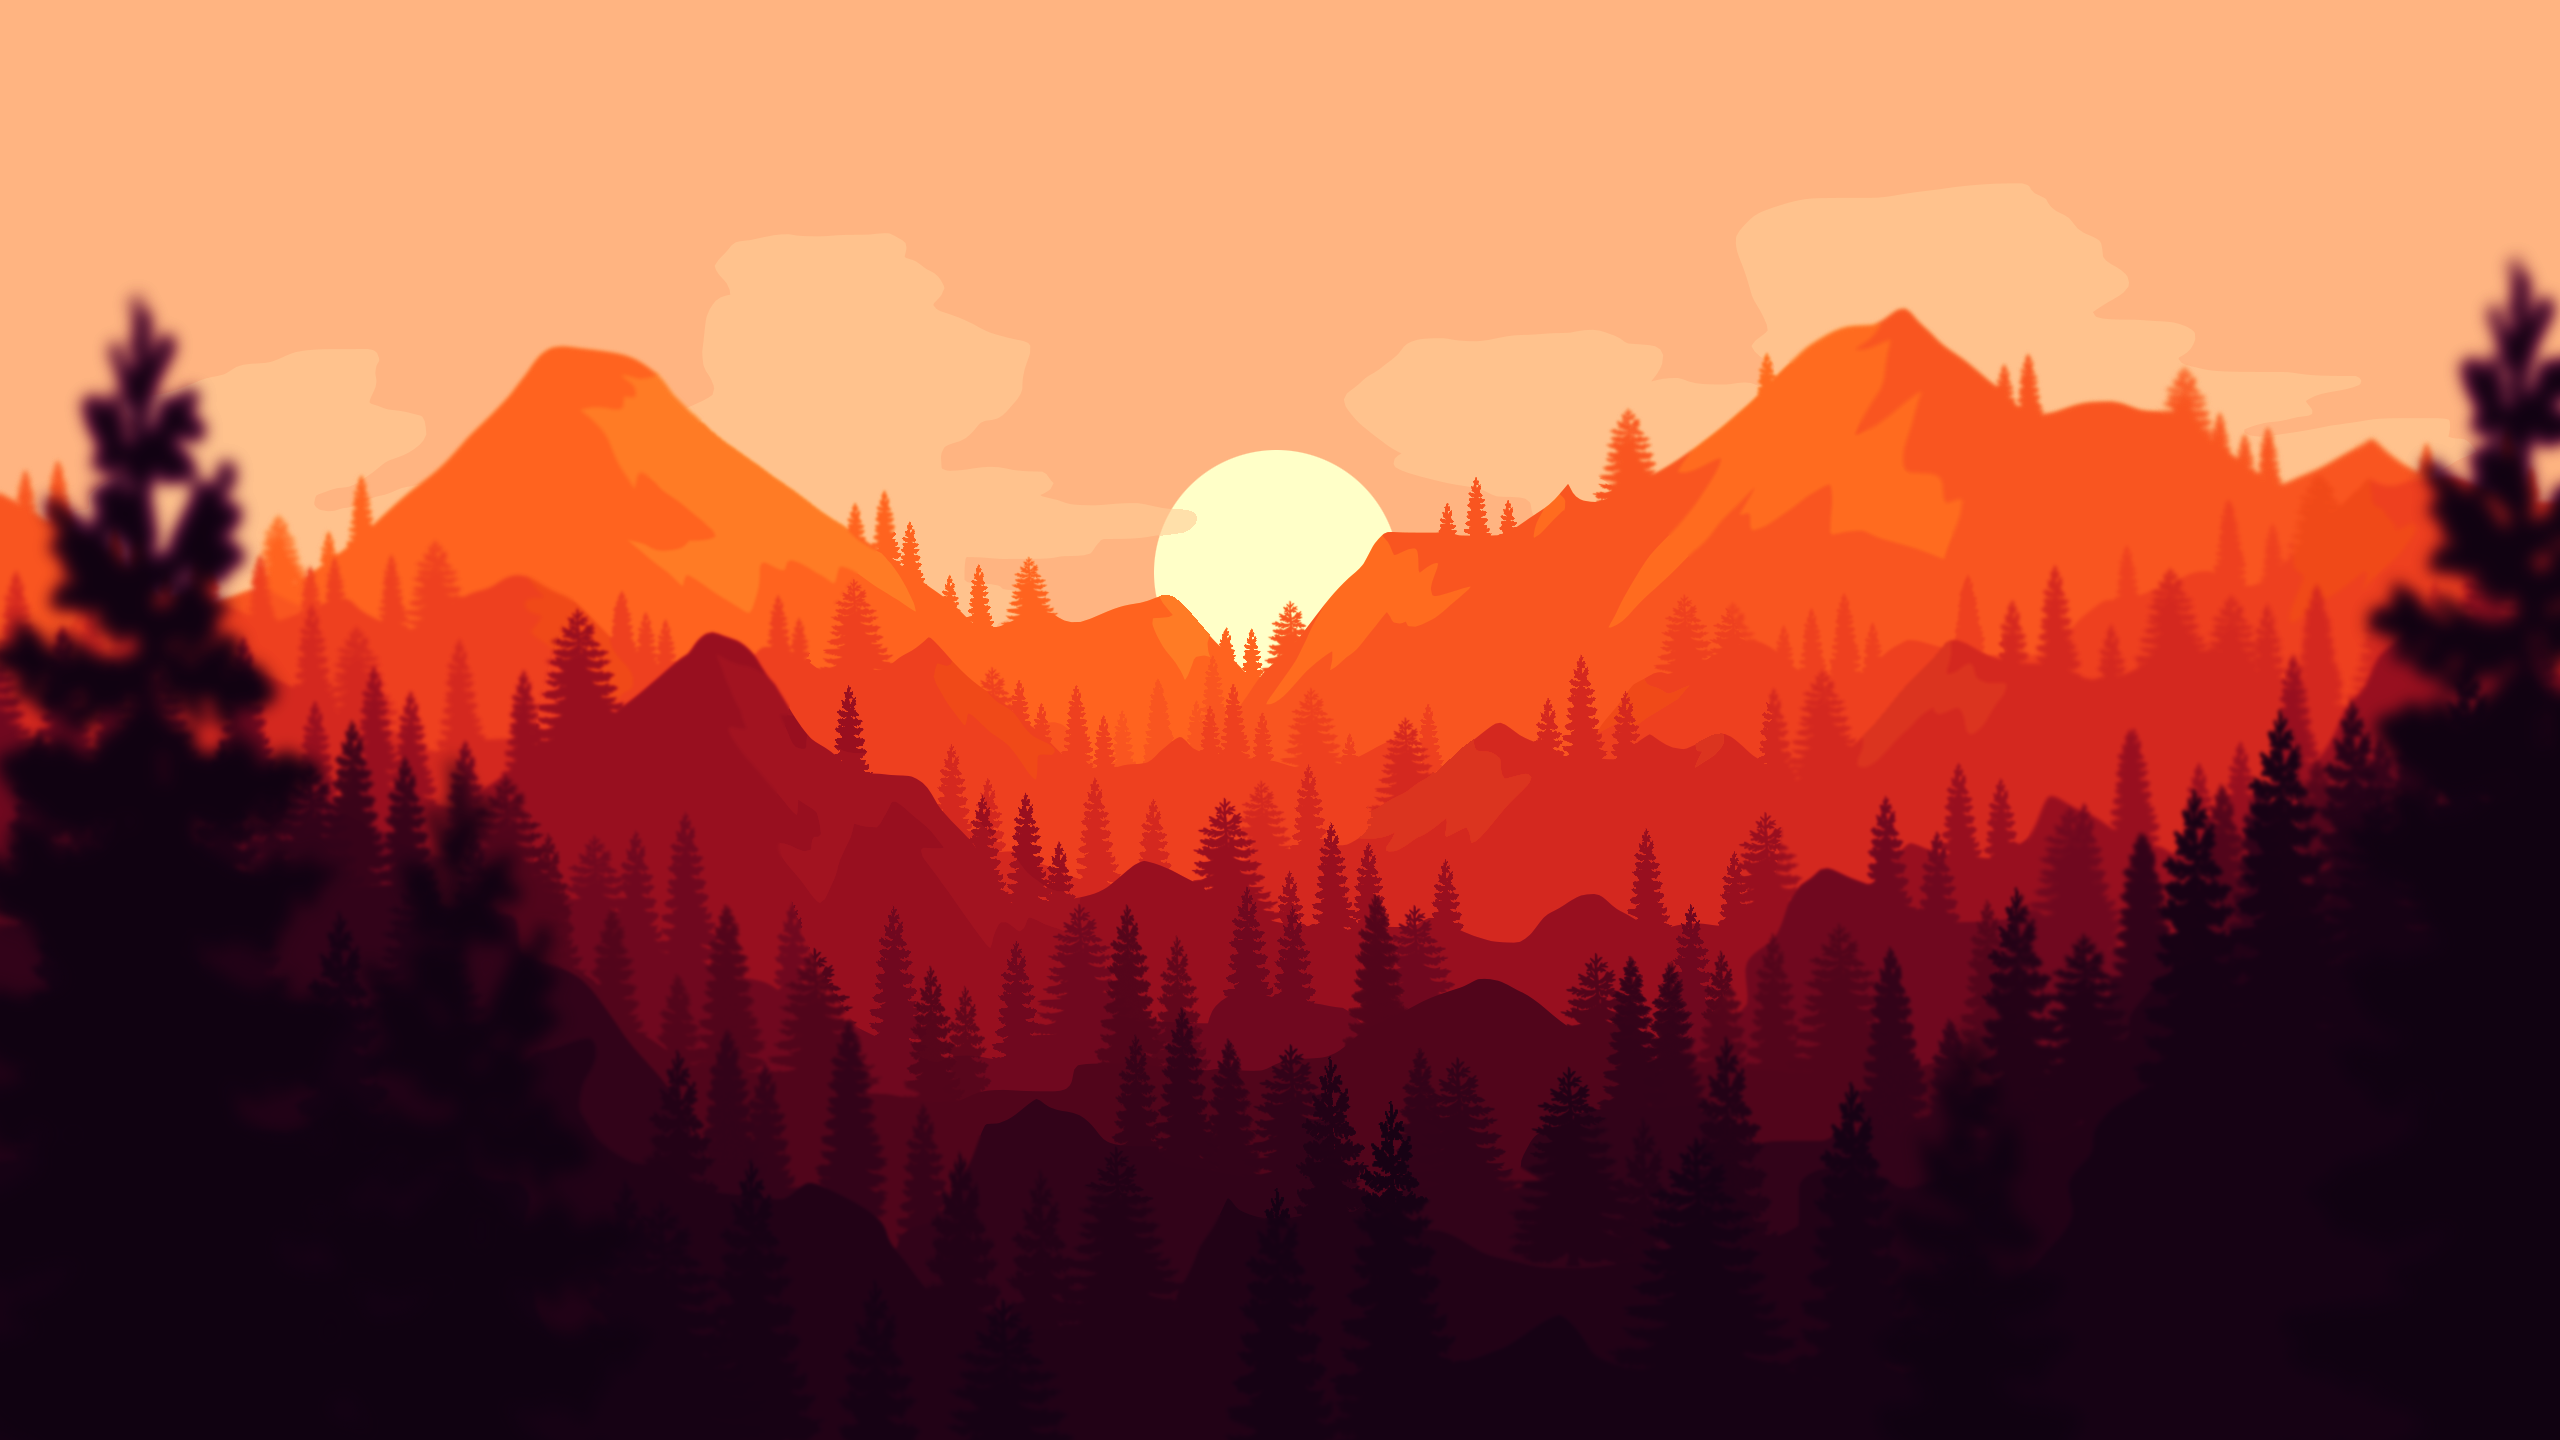 Clean Firewatch Styled Wallpaper wallpapers 2560x1440